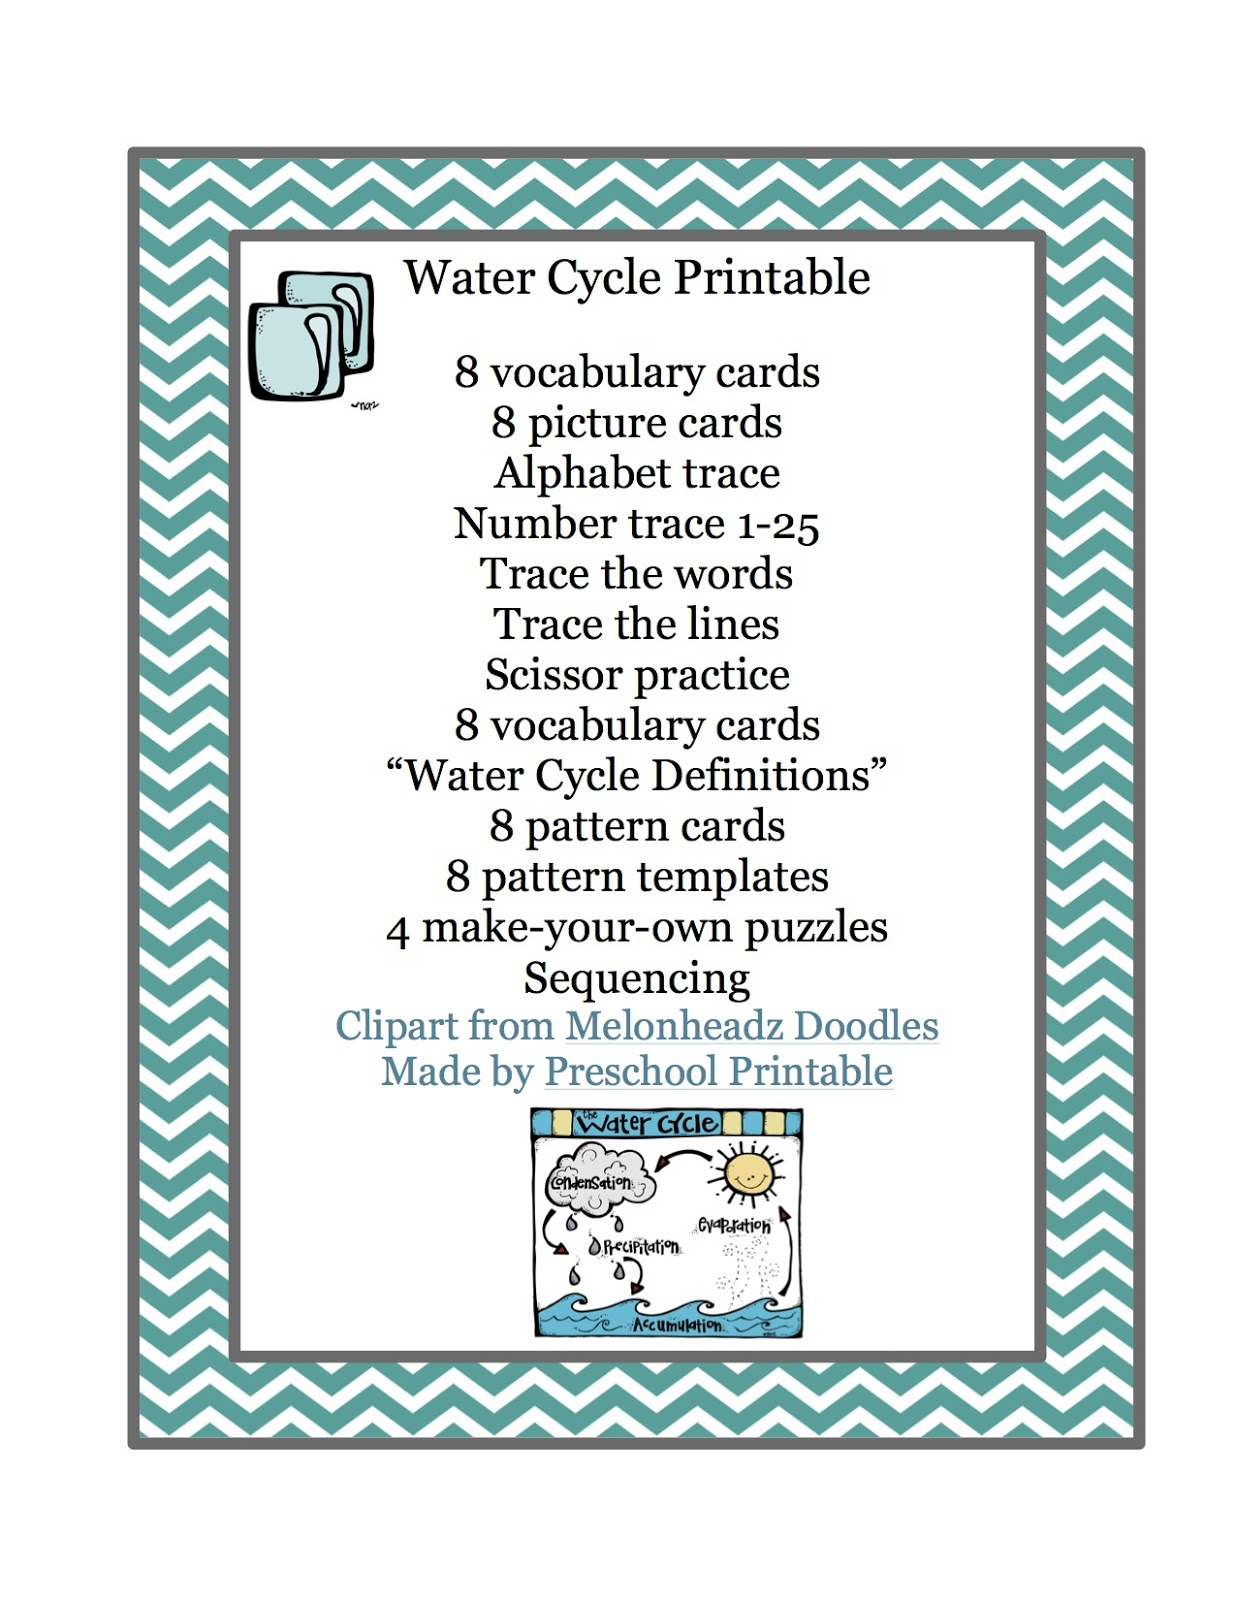 Water Cycle Printable Preschool Printables